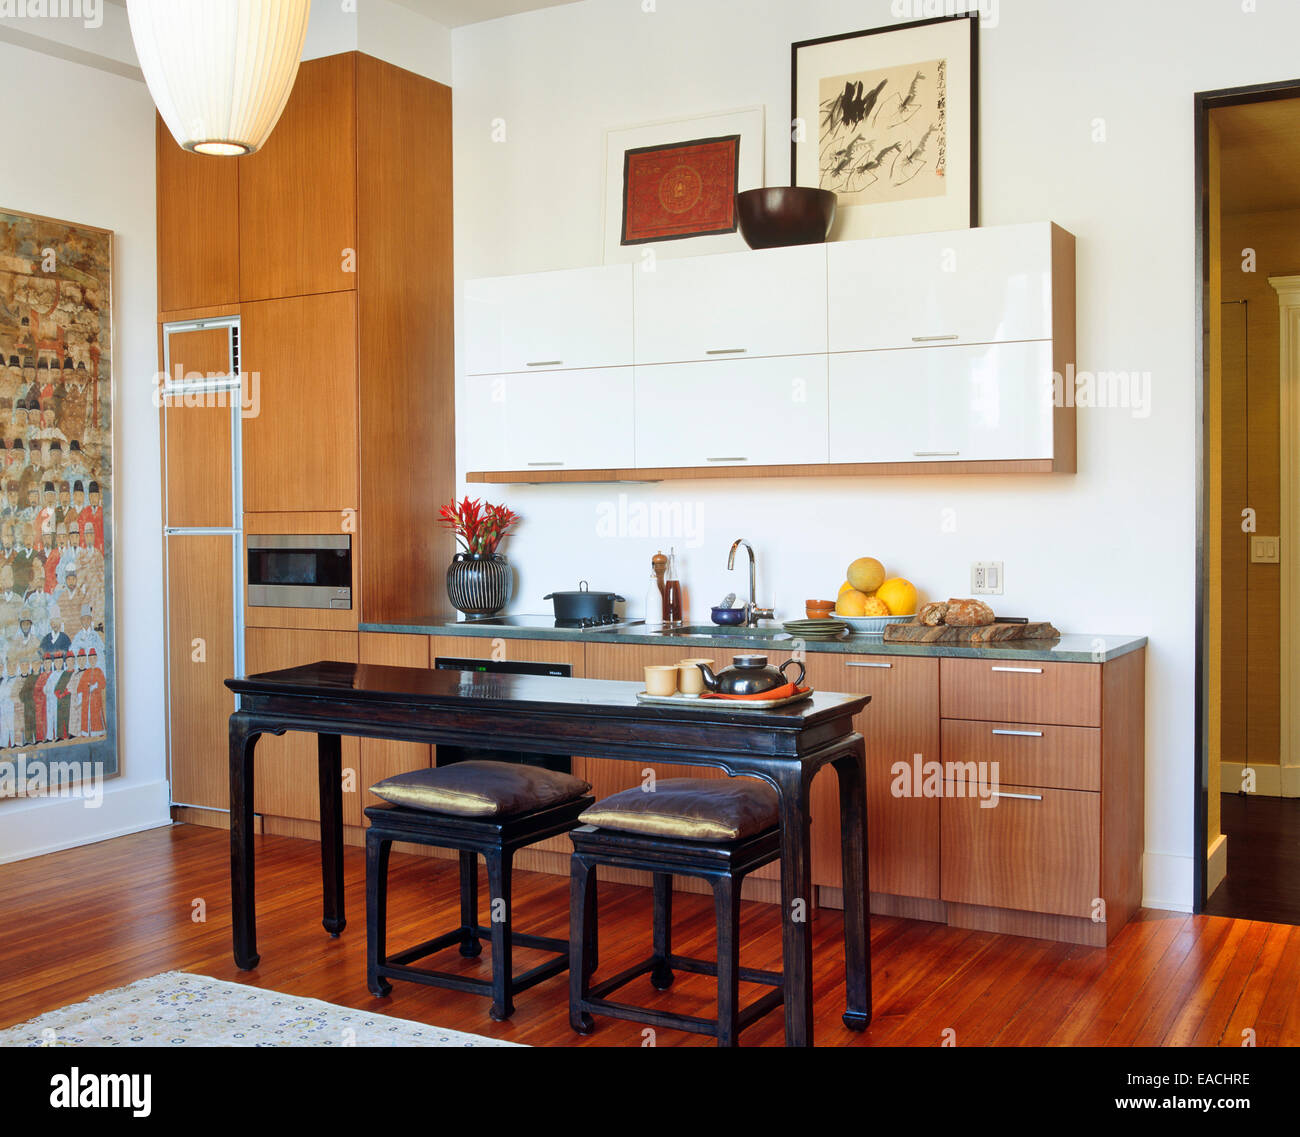 styled urban kitchen - Stock Image